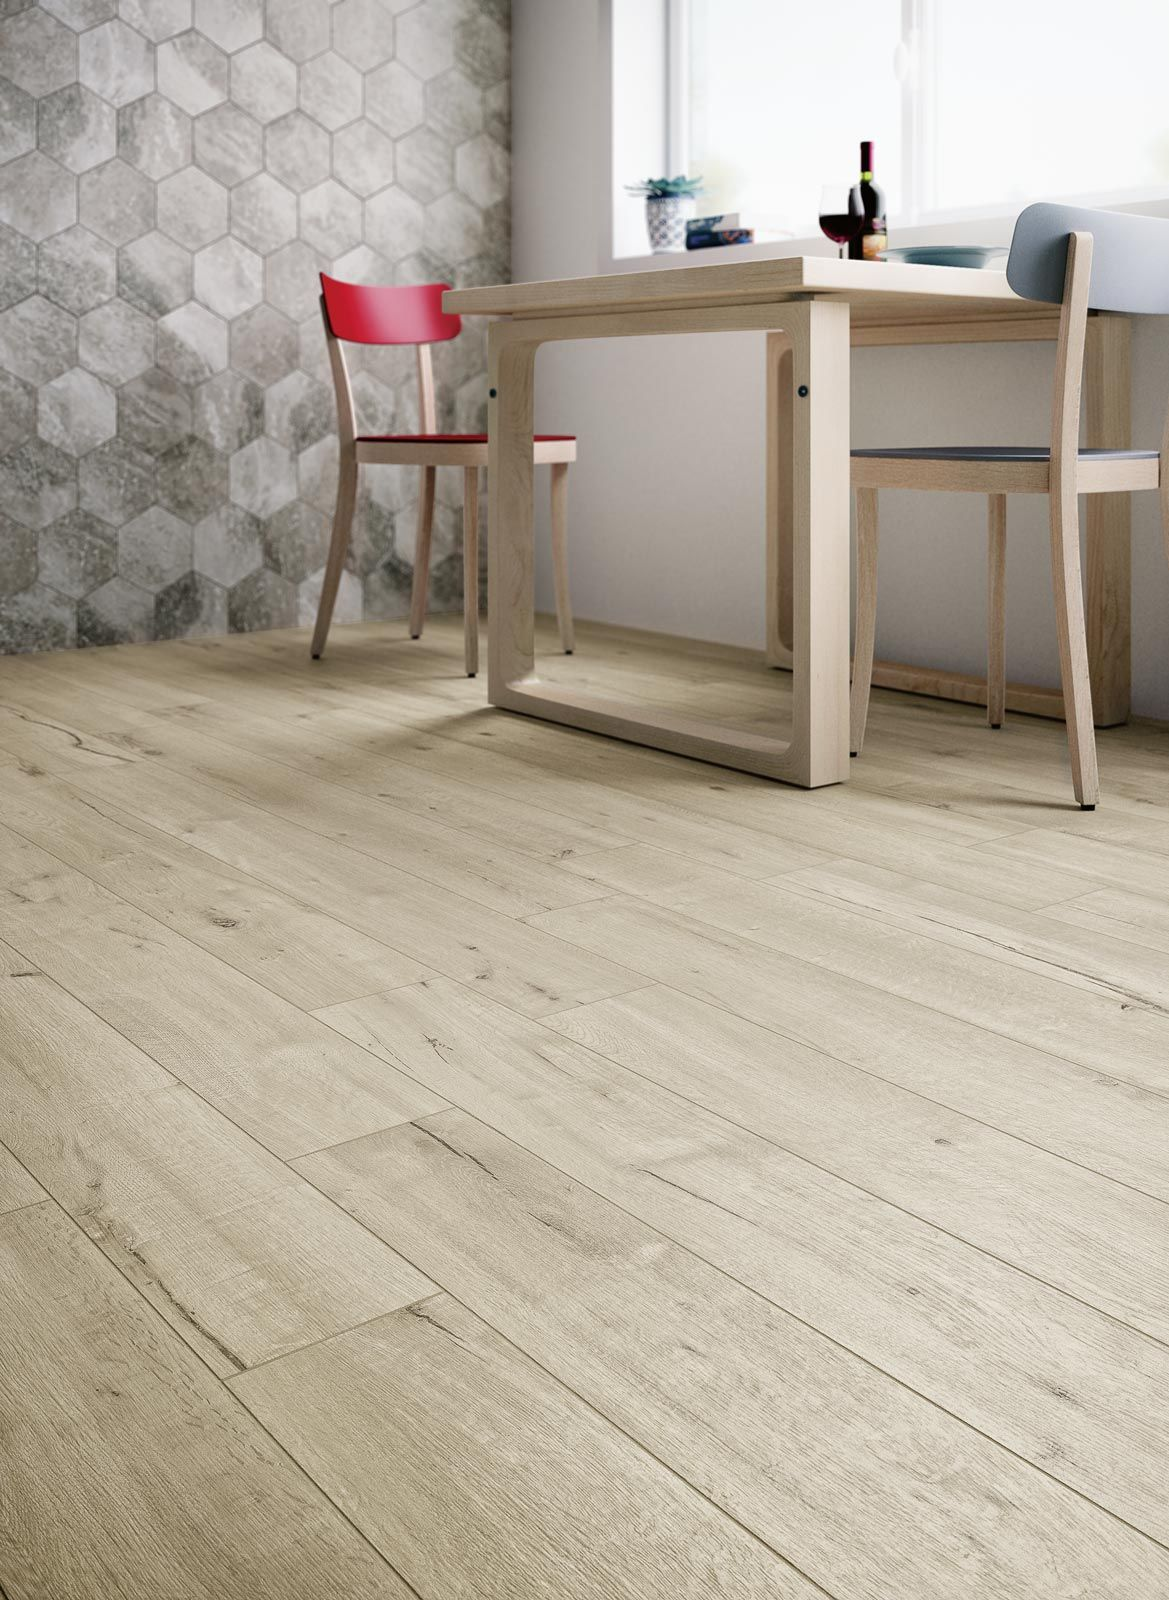 Ragno Woodtale from Tubs & Tiles